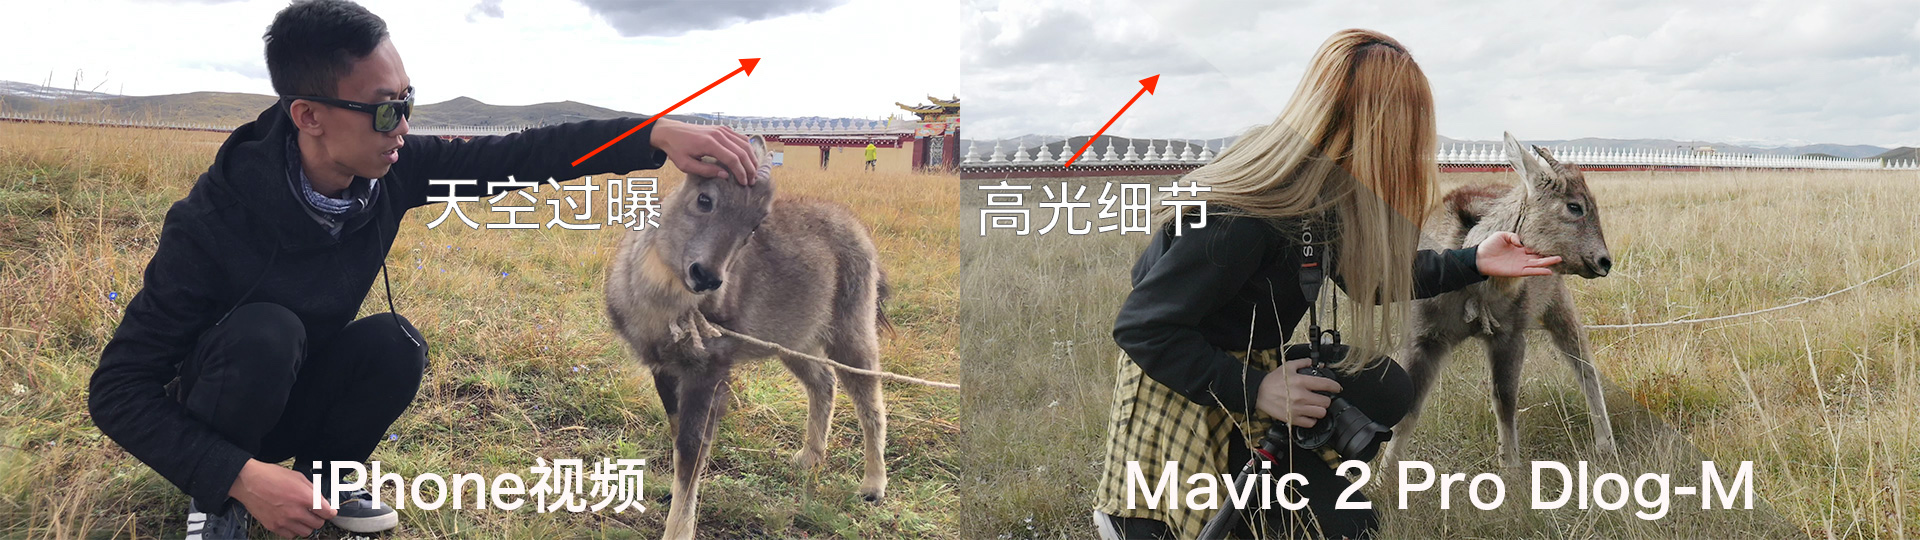 photo took by iPhone vs. photo took by mavic 2 pro